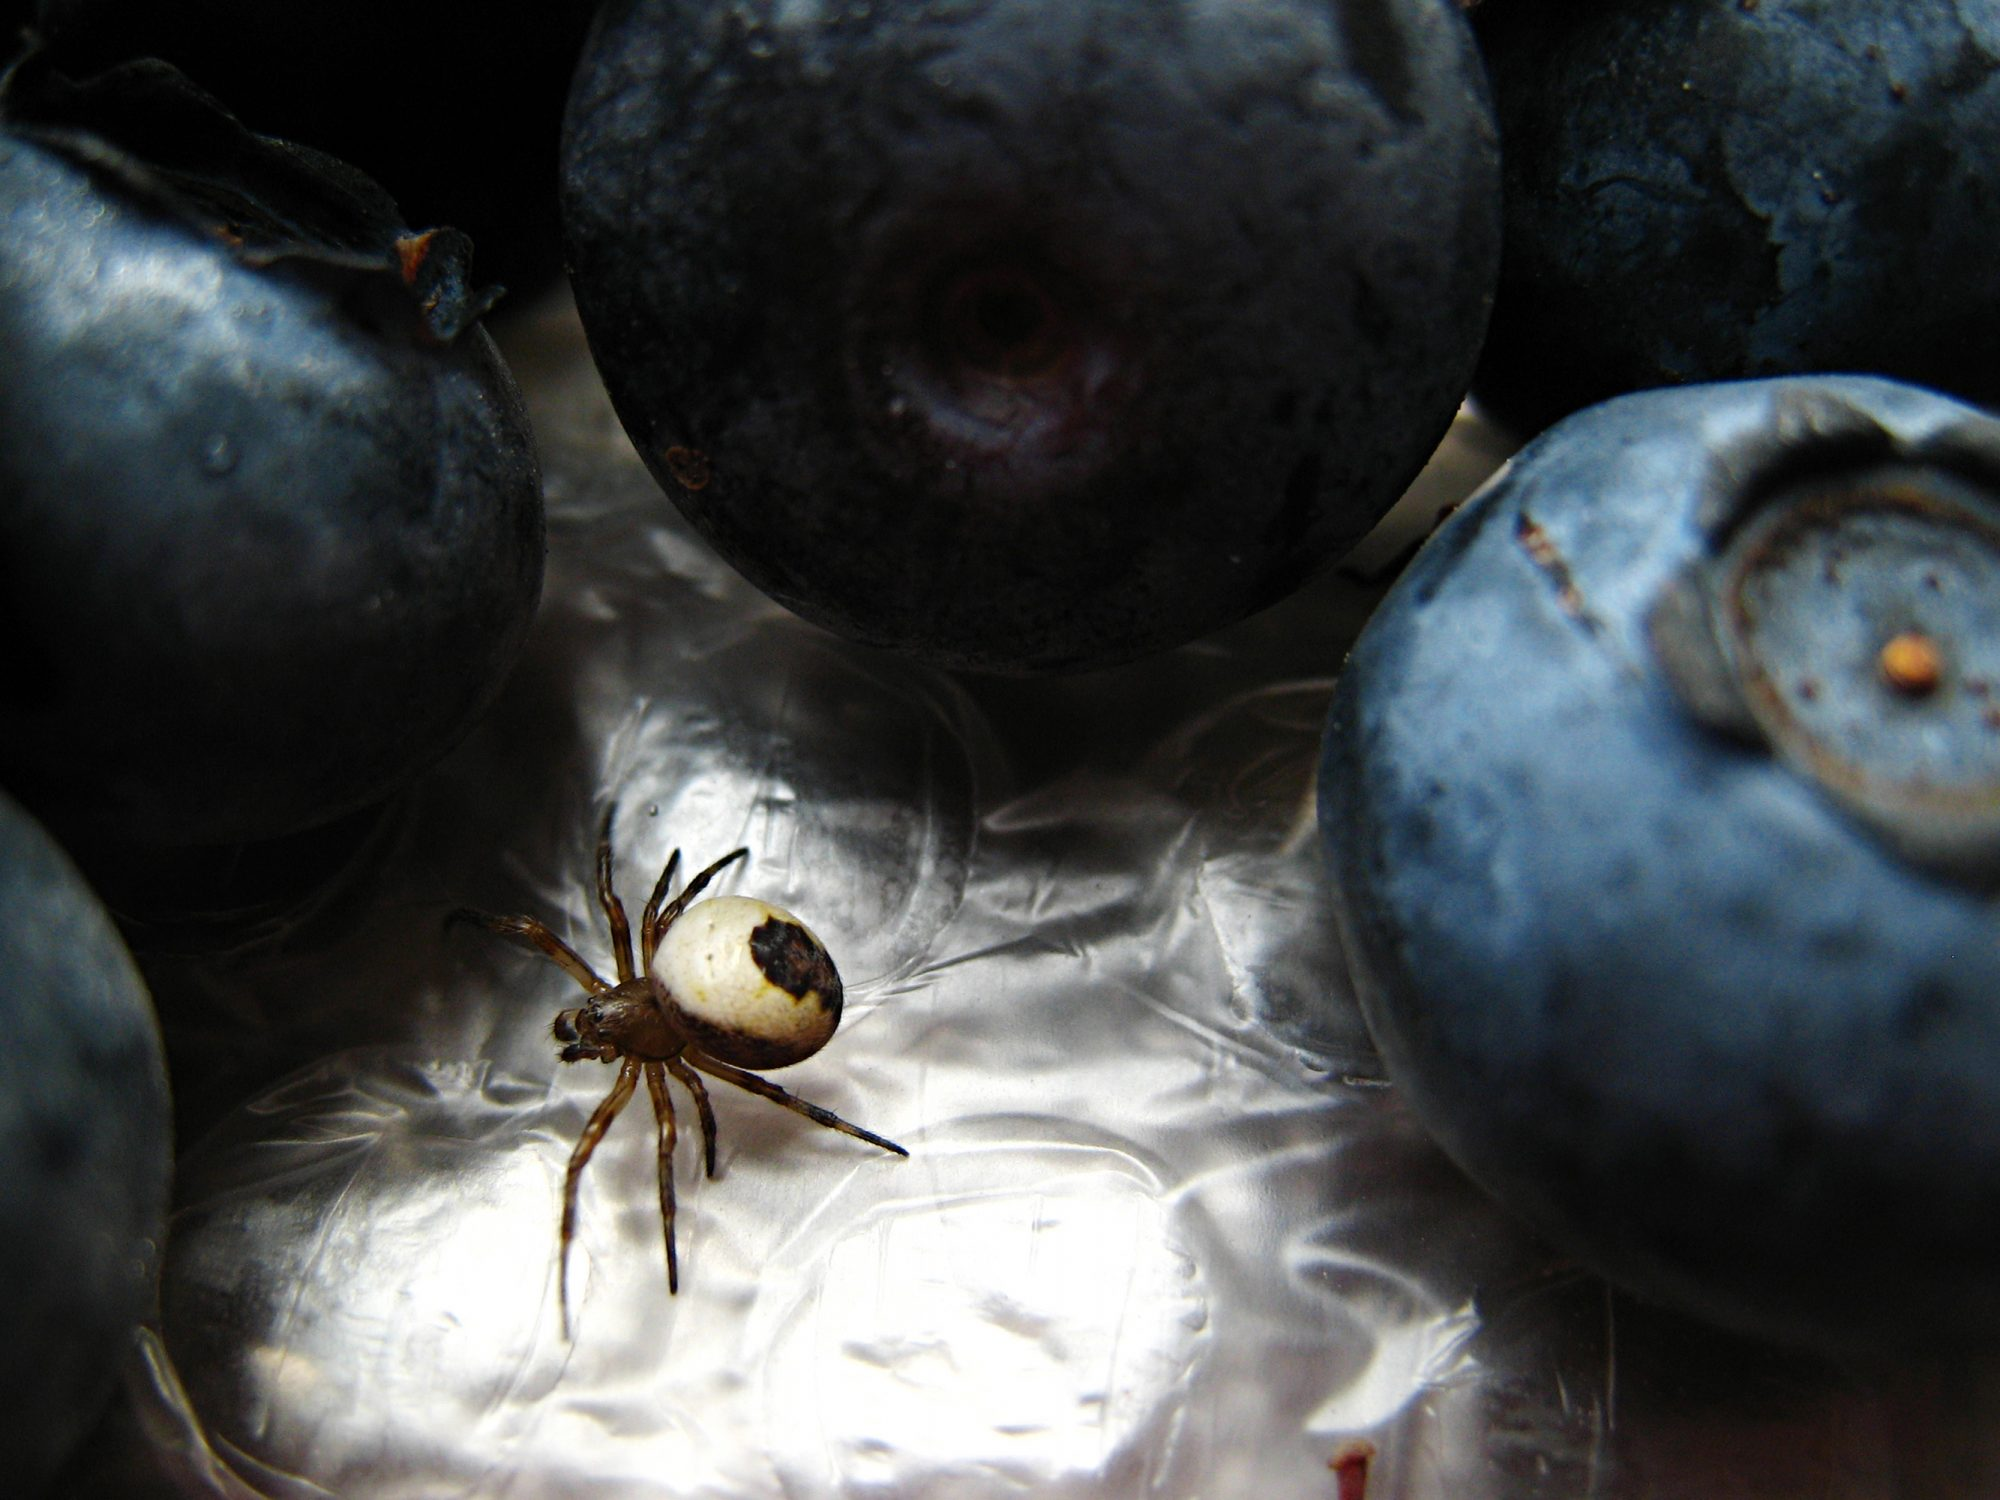 The Reason People Keep Finding Spiders in Fruit—Turns out It's a Good Thing